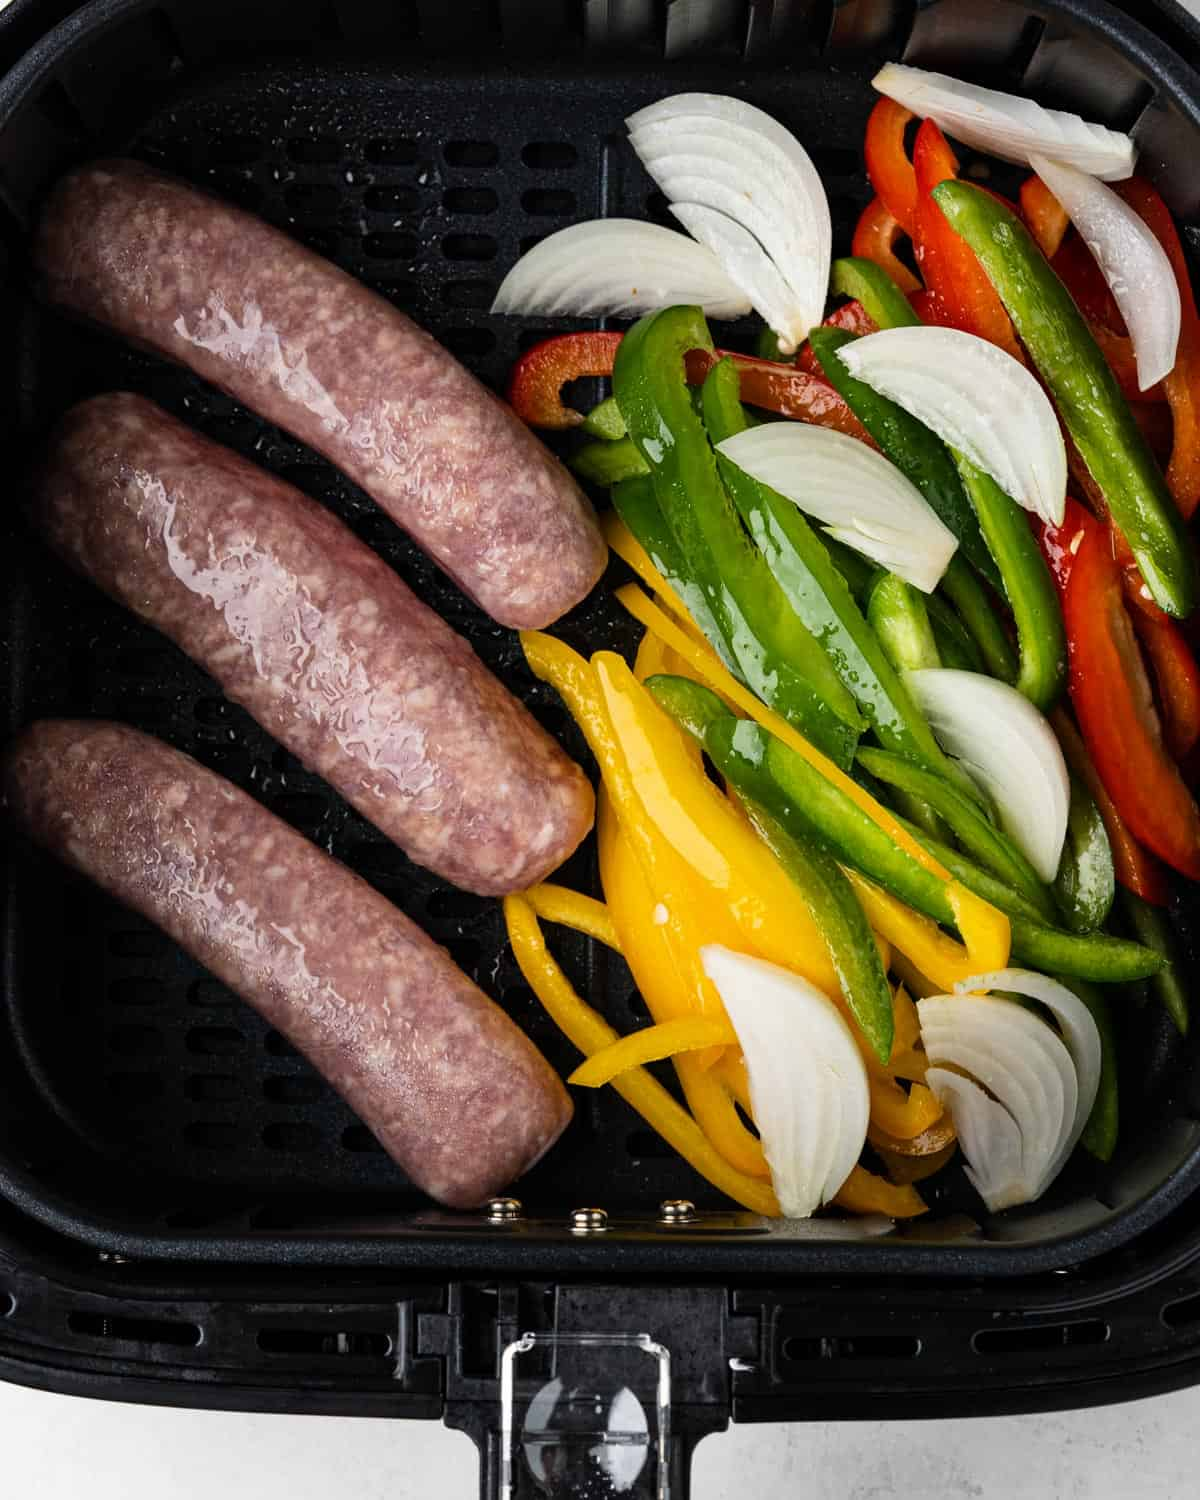 Uncooked brats, onions and peppers inside the air fryer